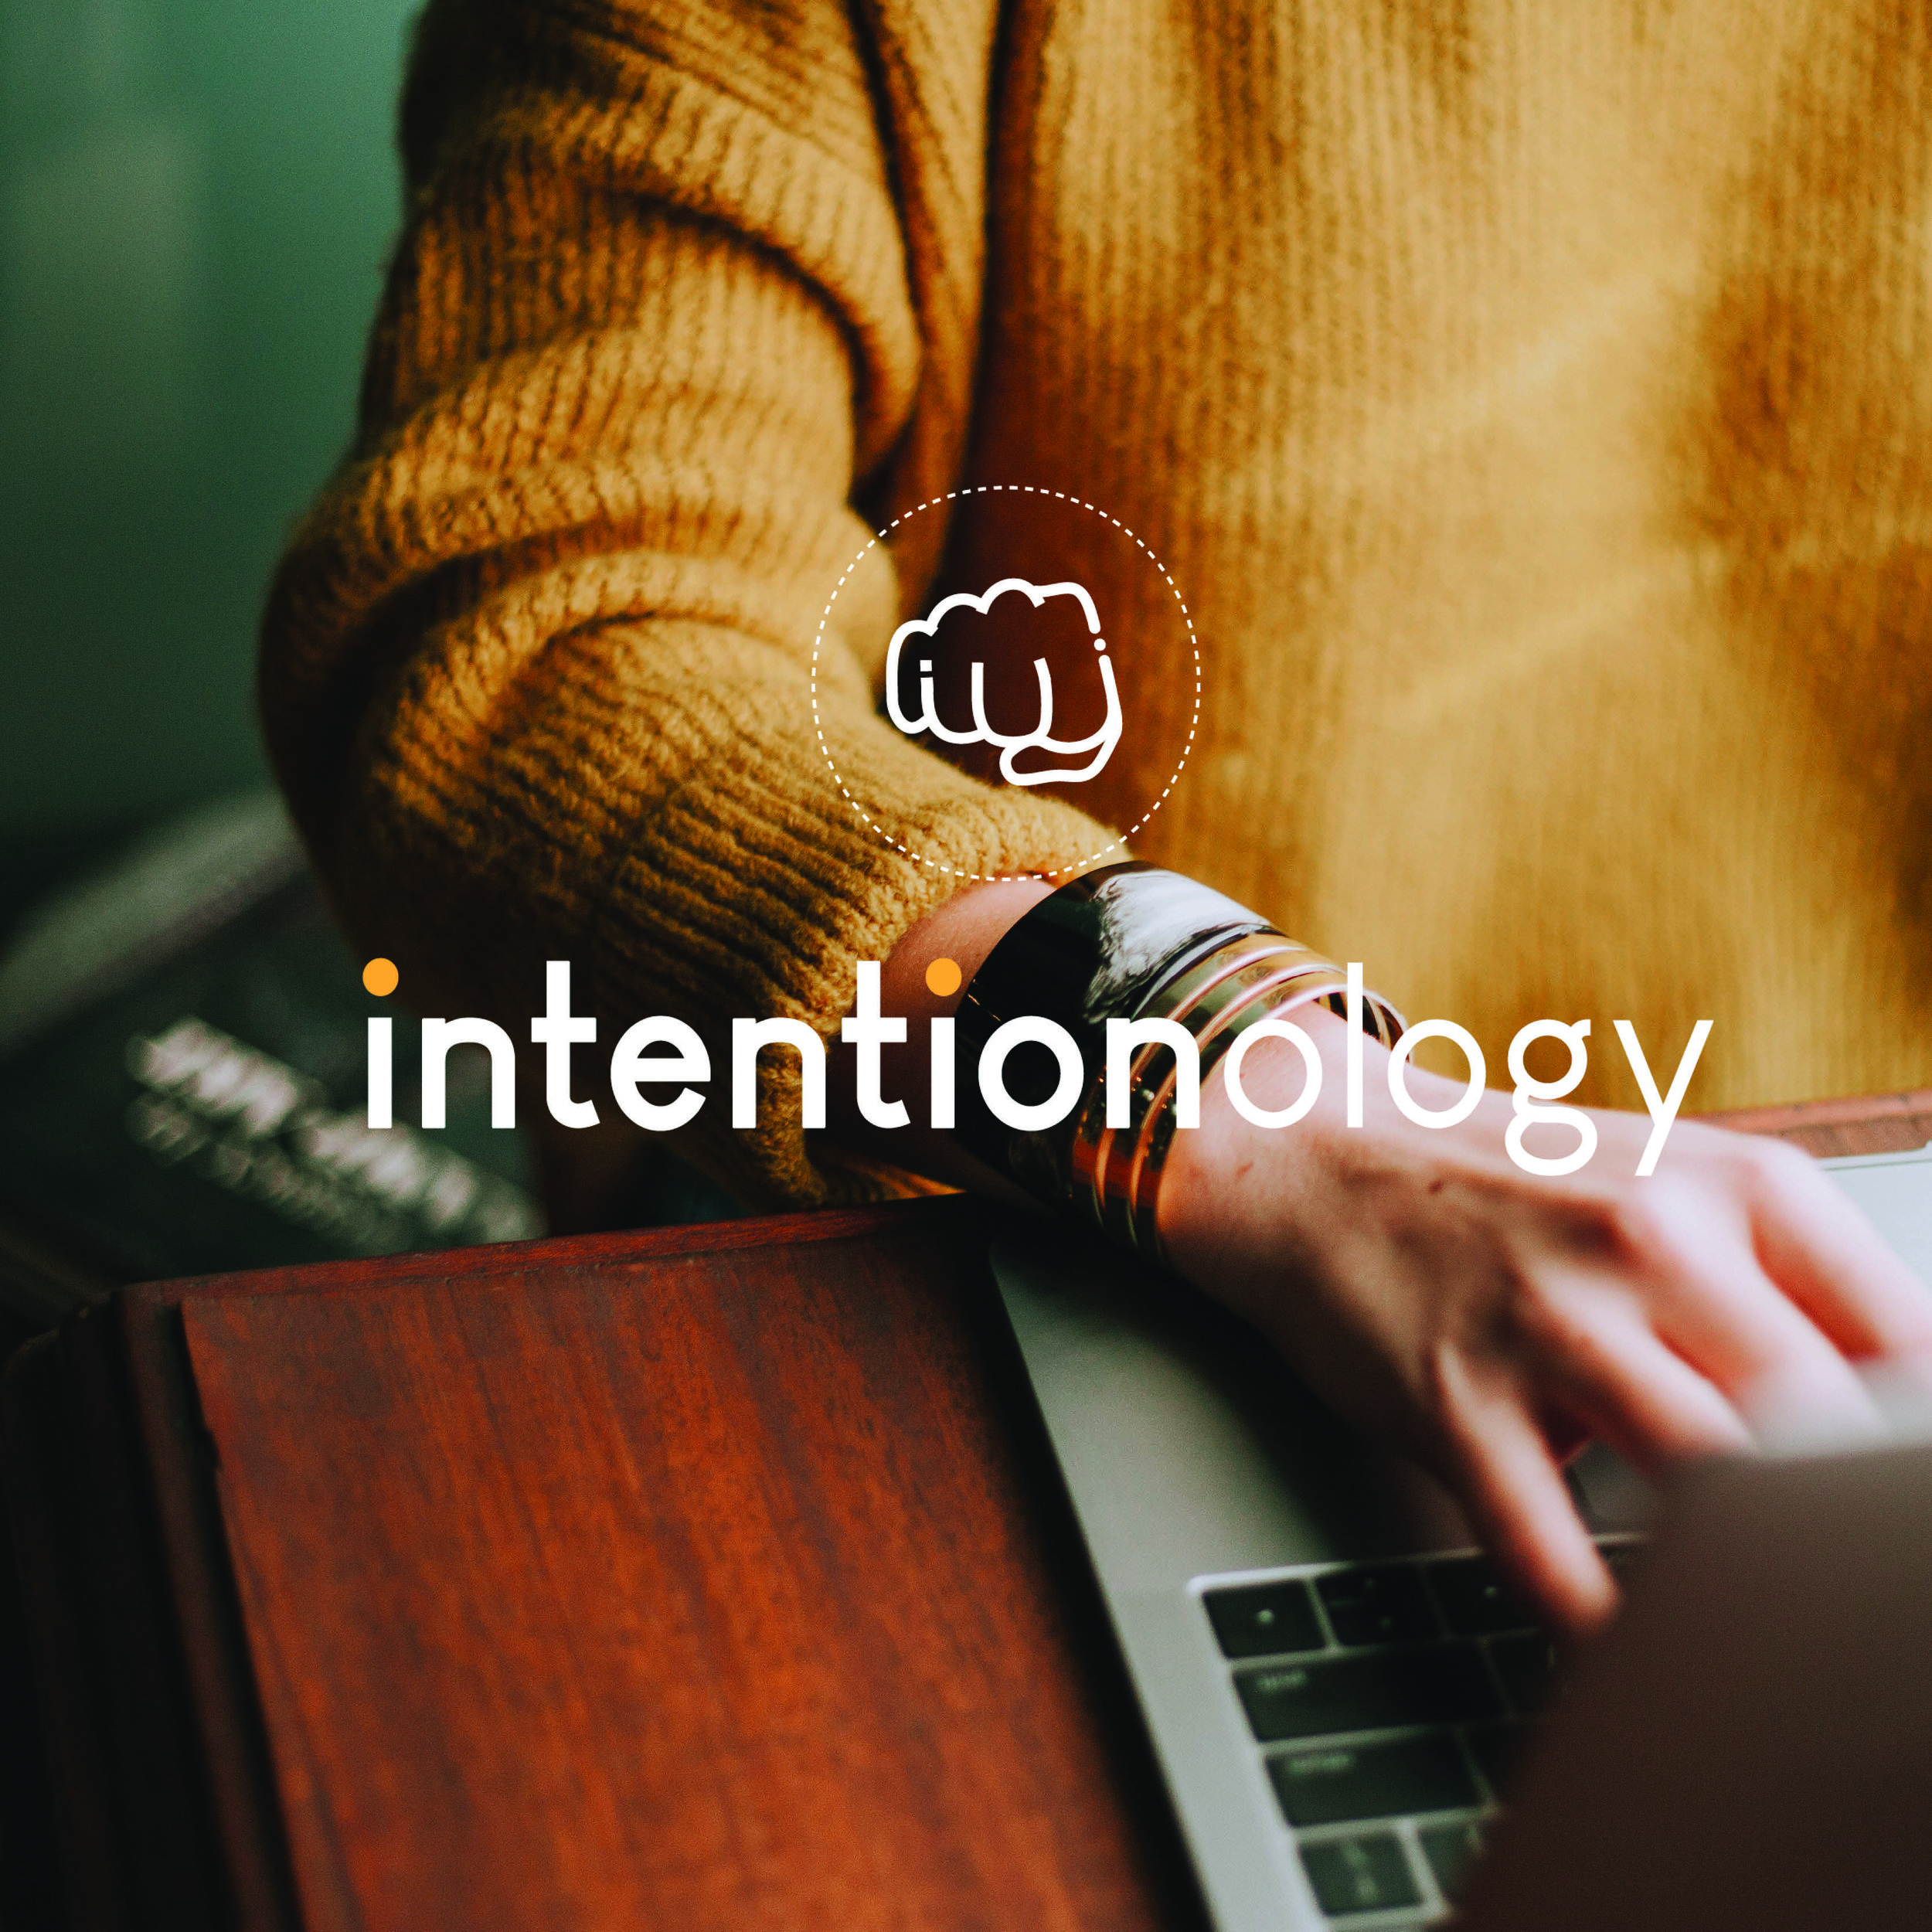 Intentionology-Brand6.jpg